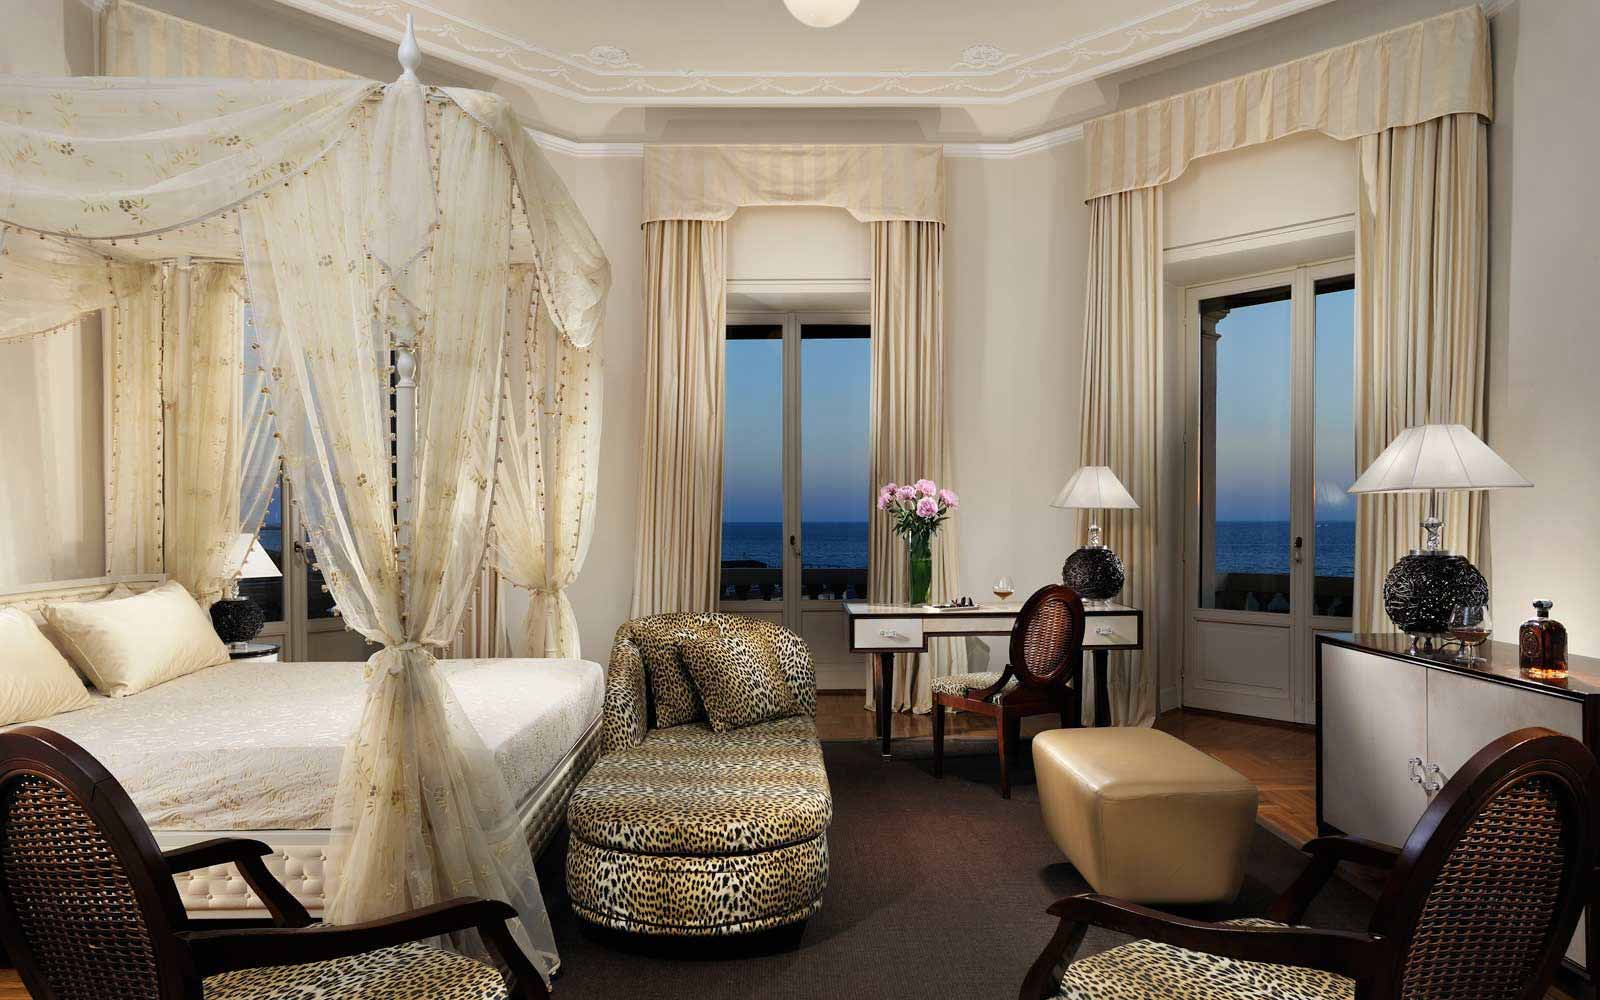 Junior Suite sea view with balcony and Jacuzzi at Grand Hotel Principe di Piemonte